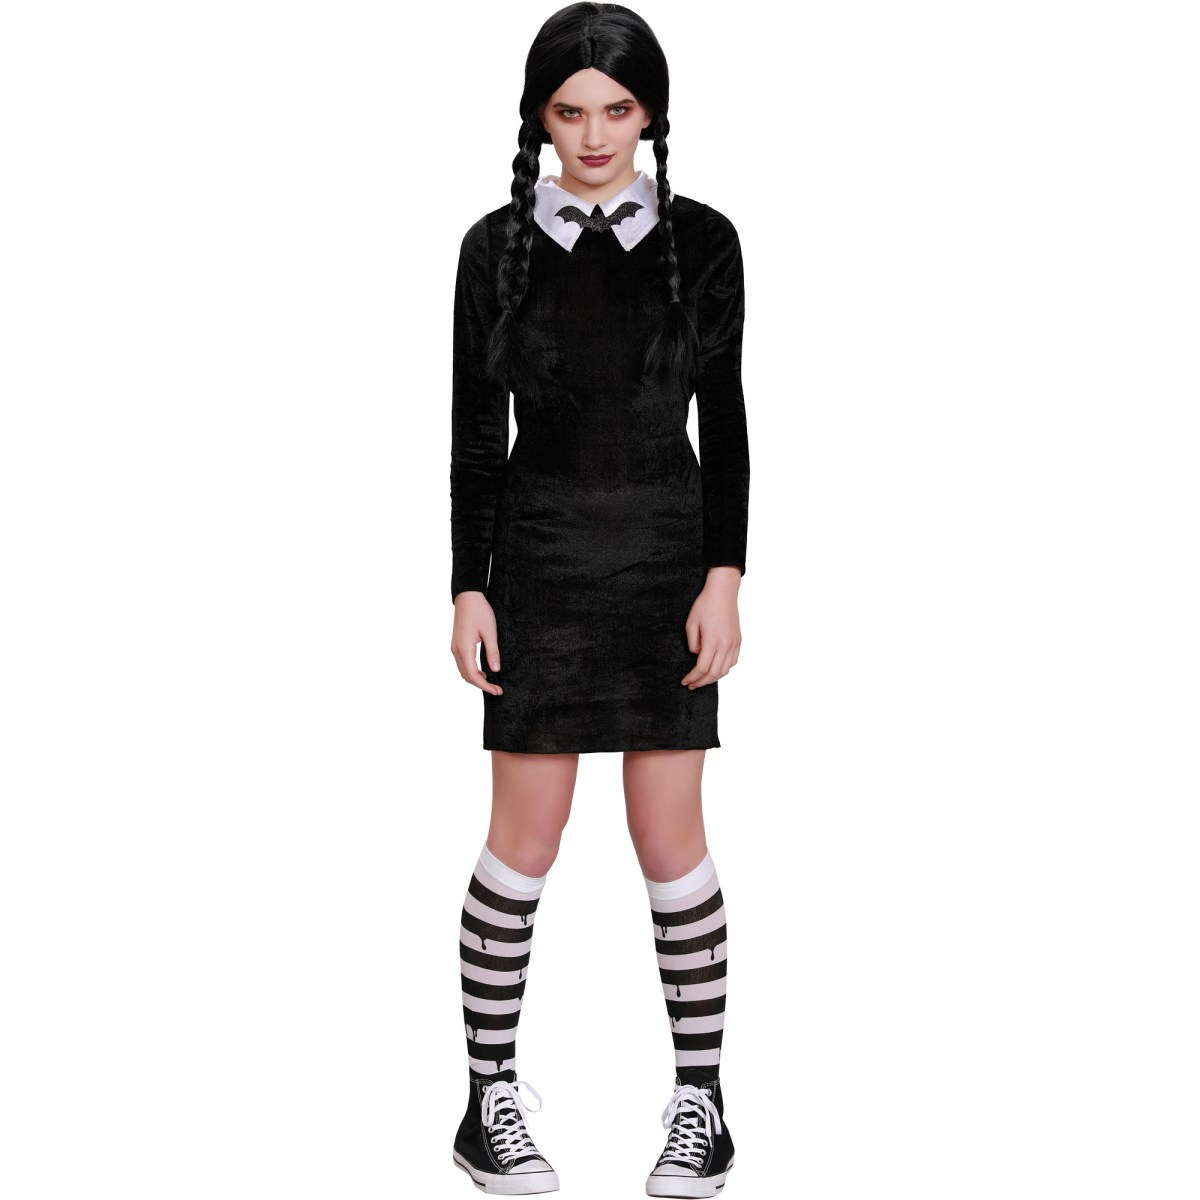 Two snaps to whoever named this knockoff Wednesday Addams costume